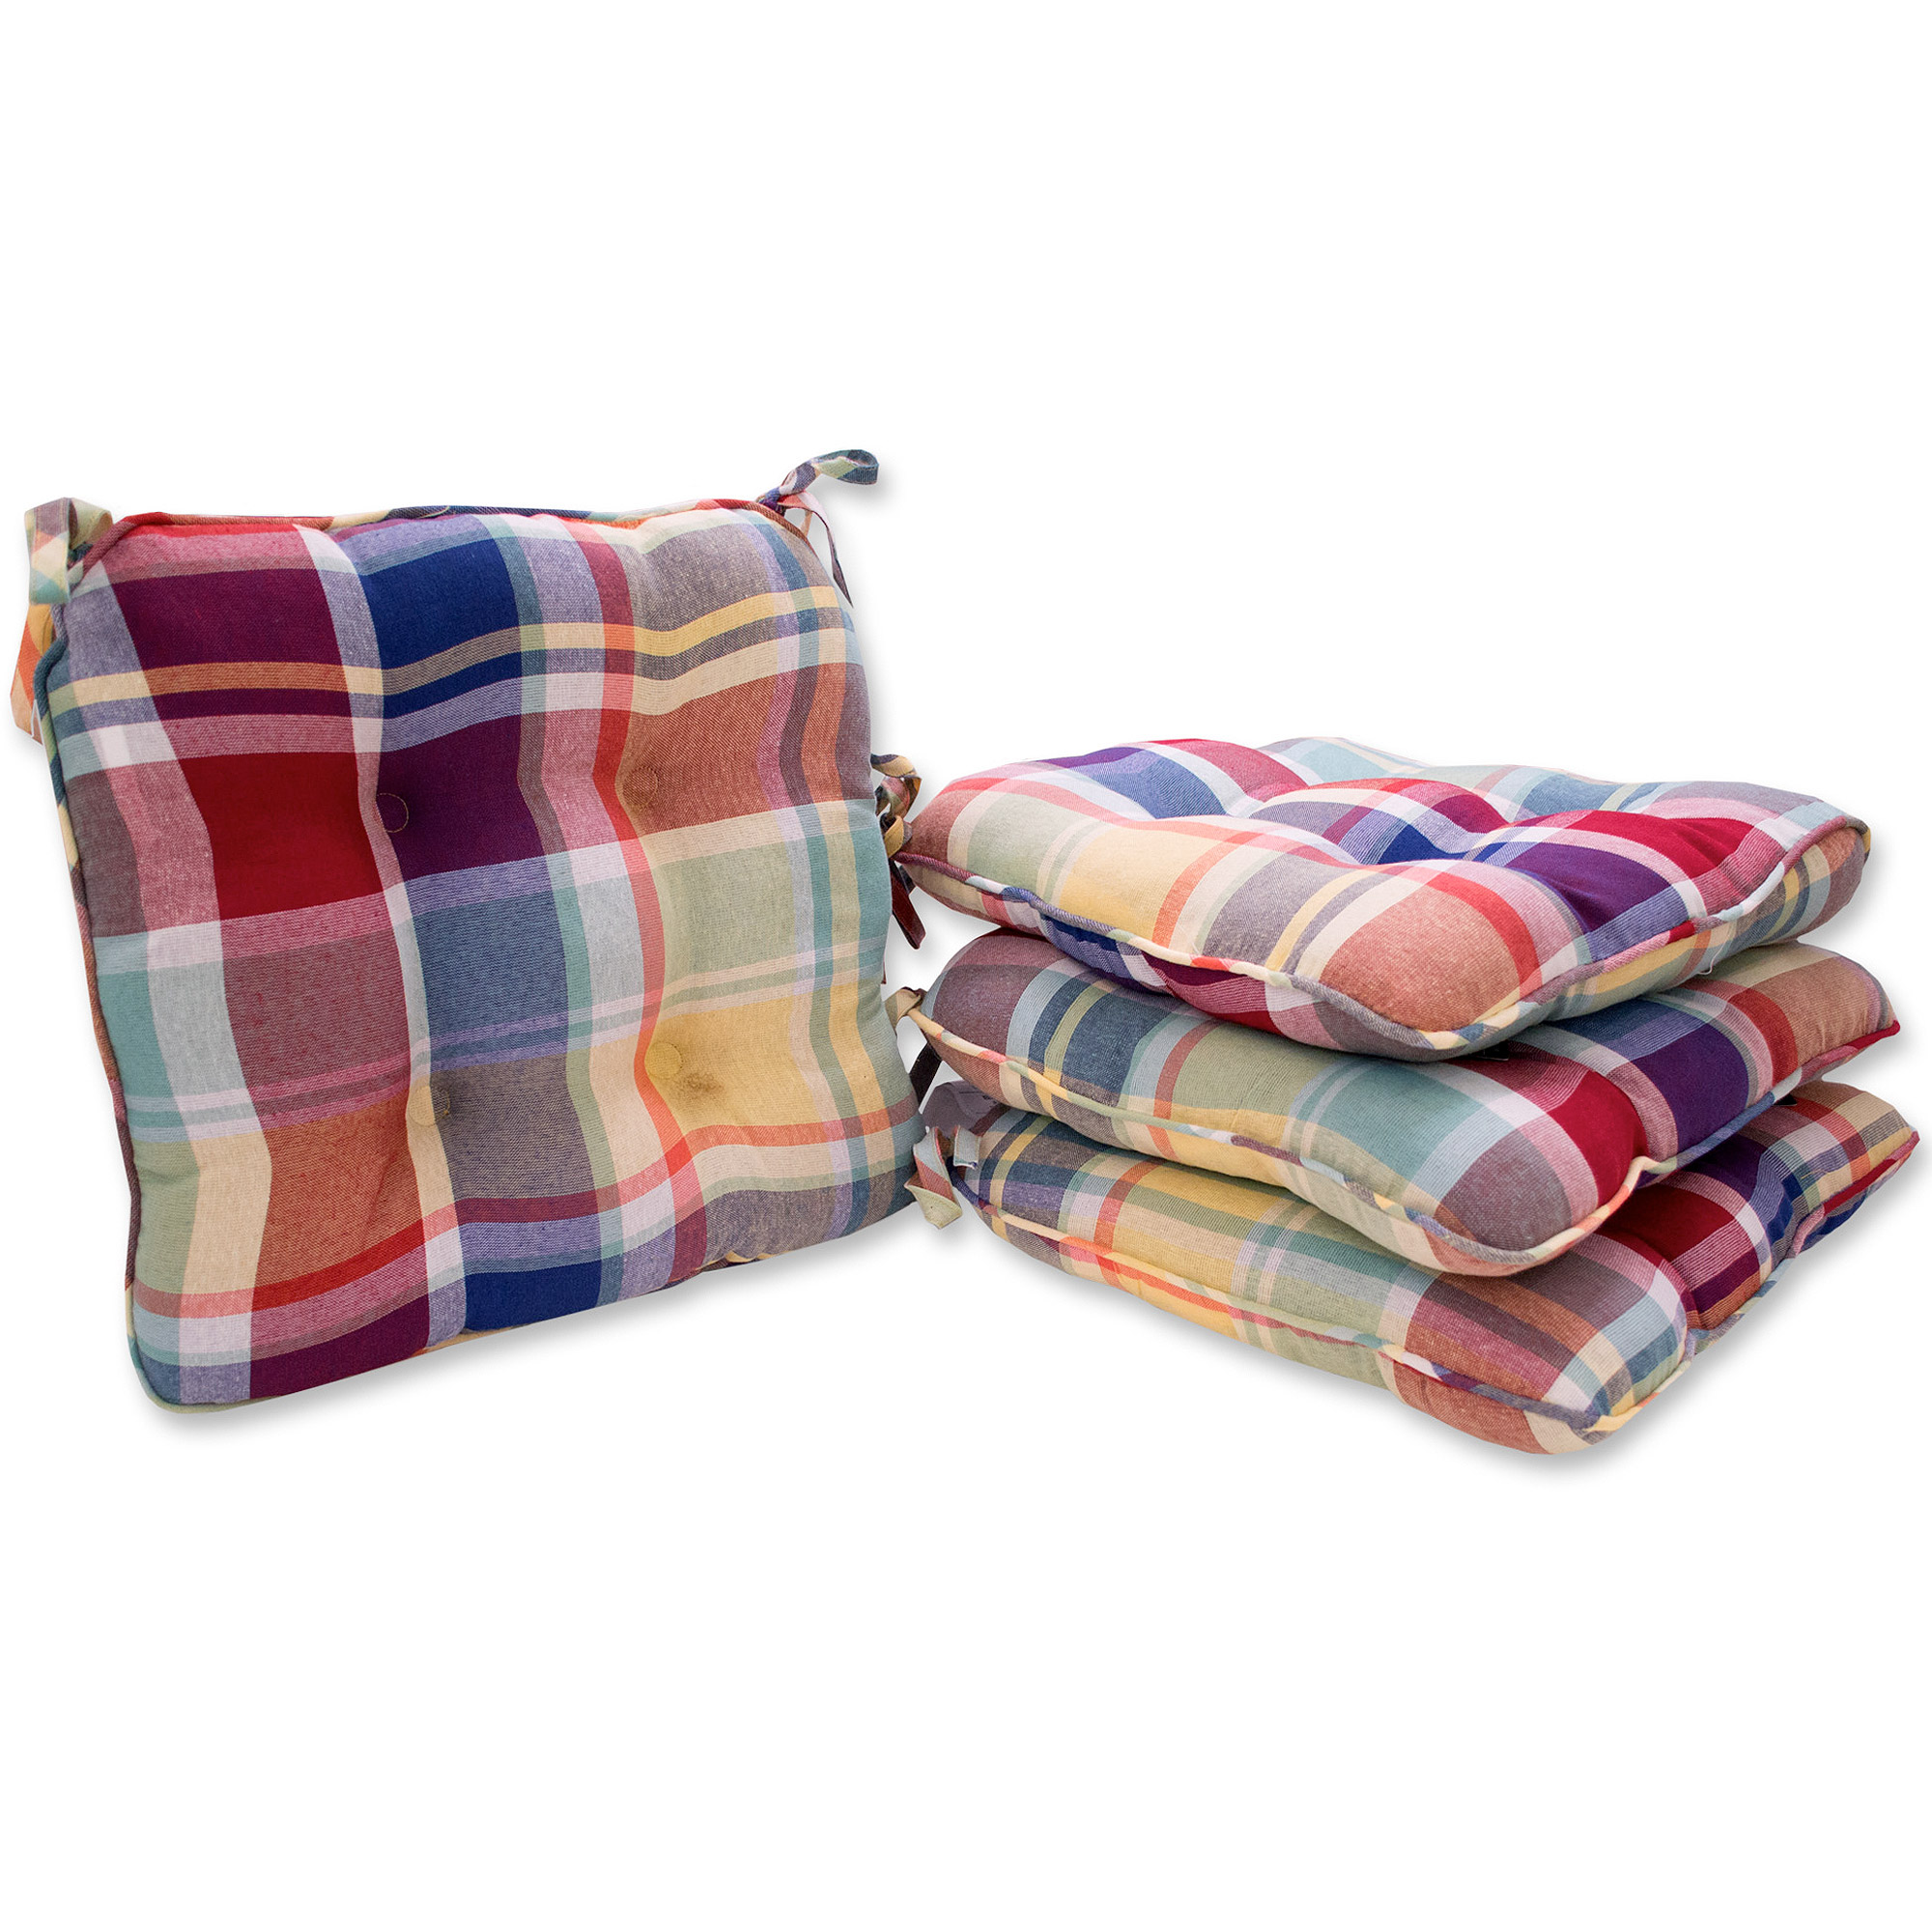 Attrayant Mainstays Rave Plaid Chair Pad, Set Of 4